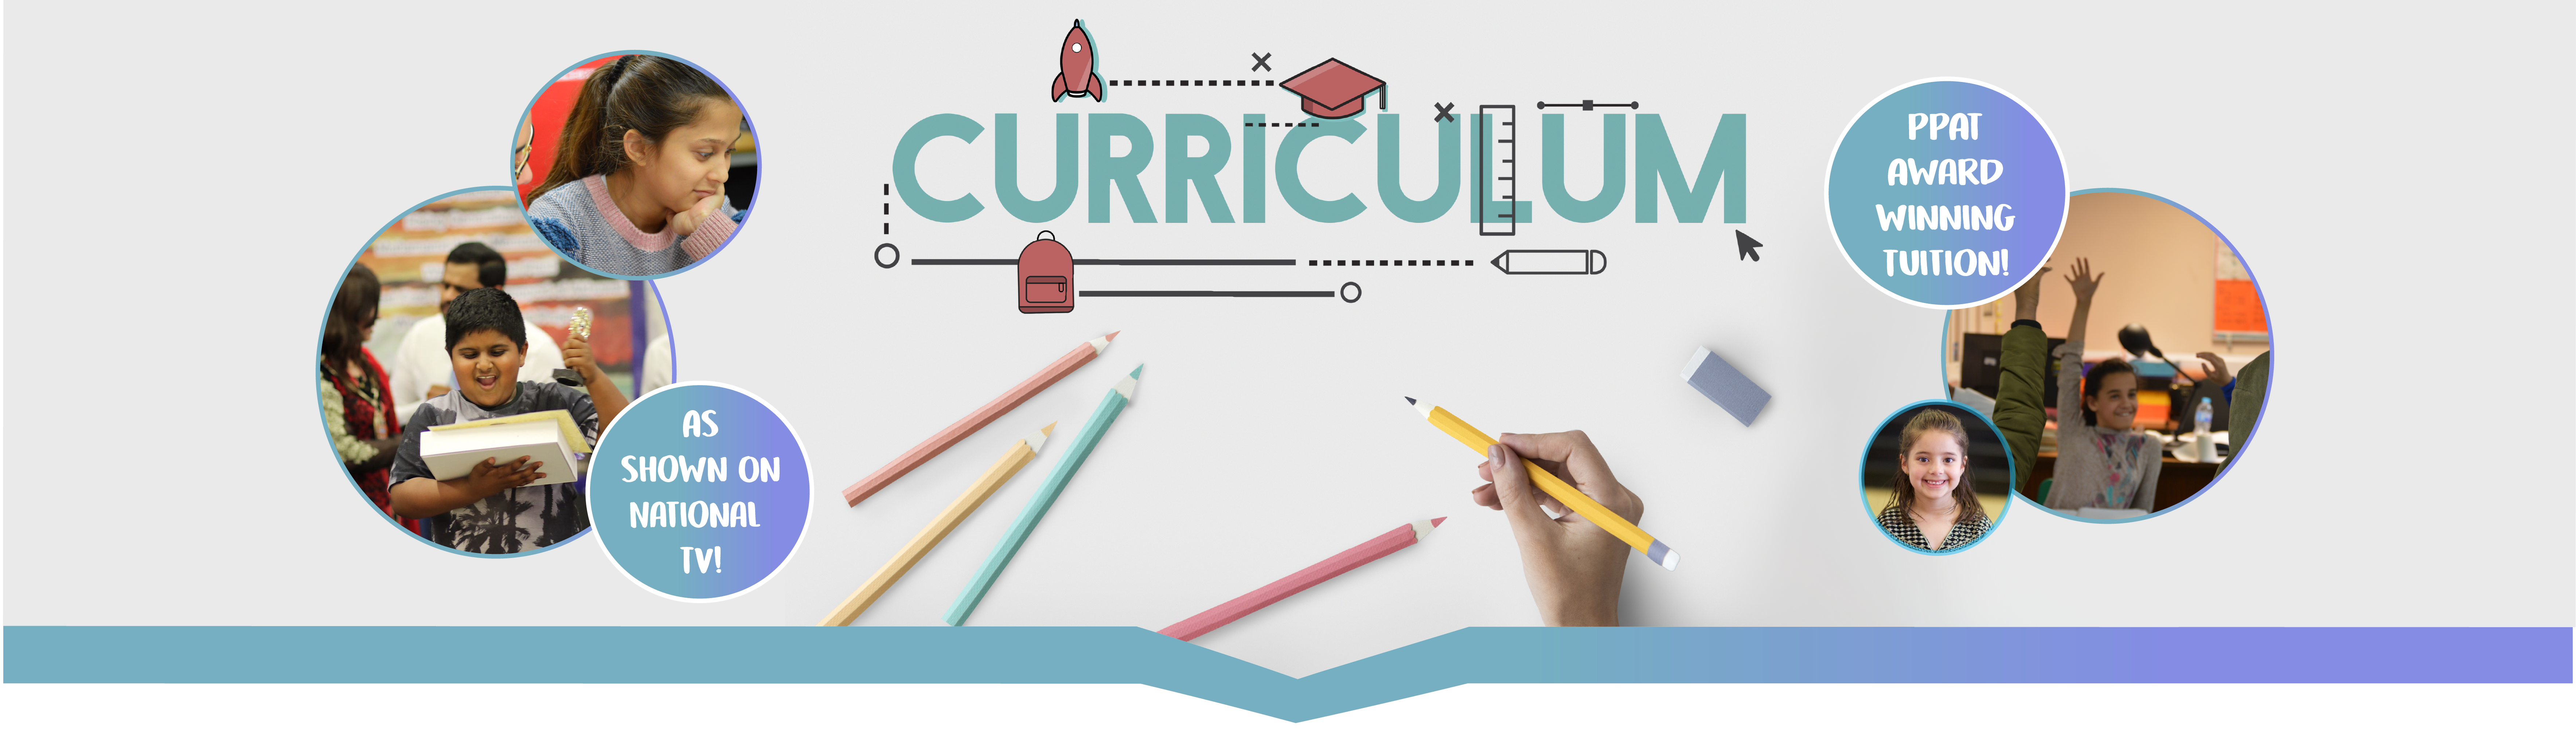 curriculum page